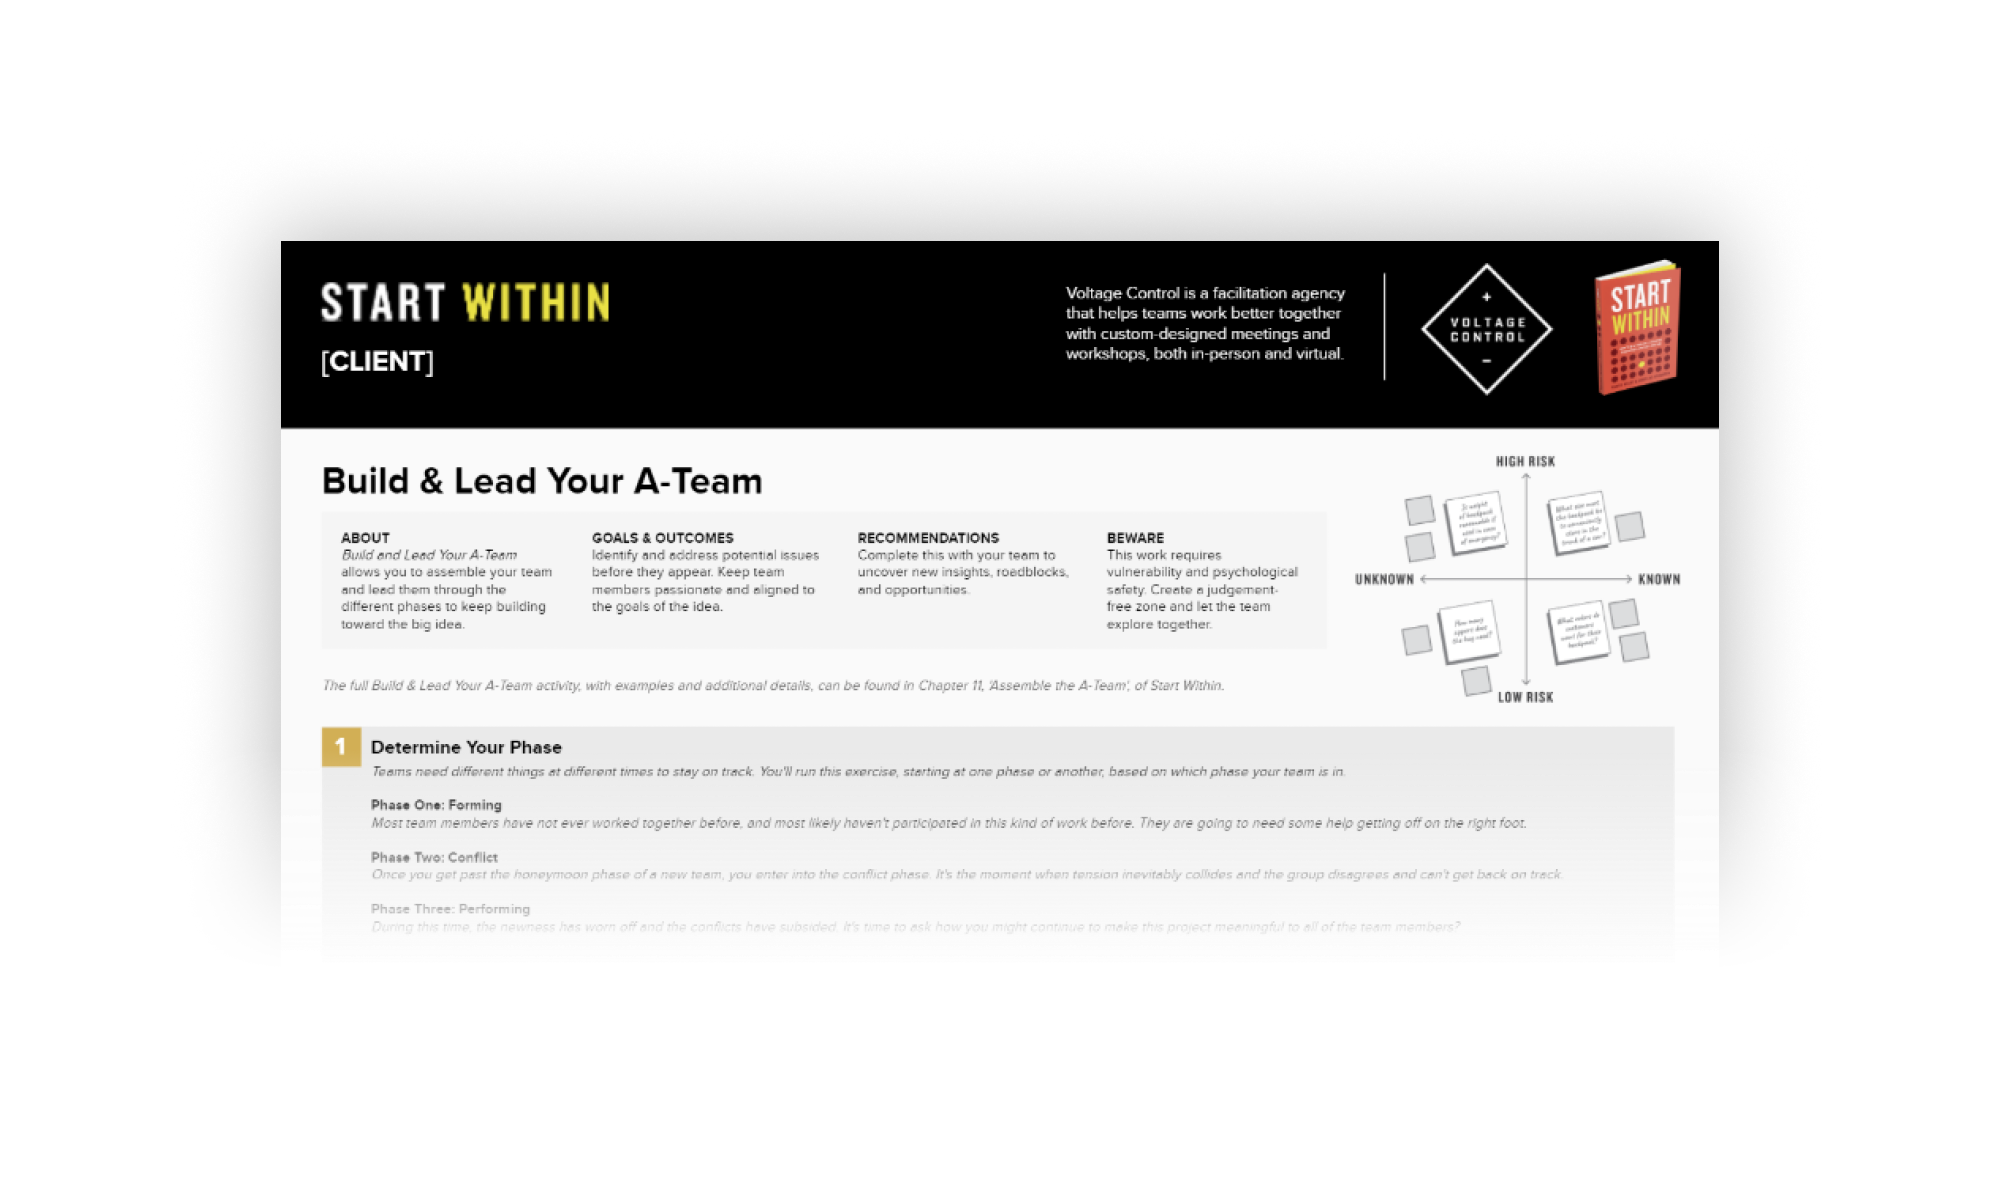 Build & Lead Your A-Team MURAL Template